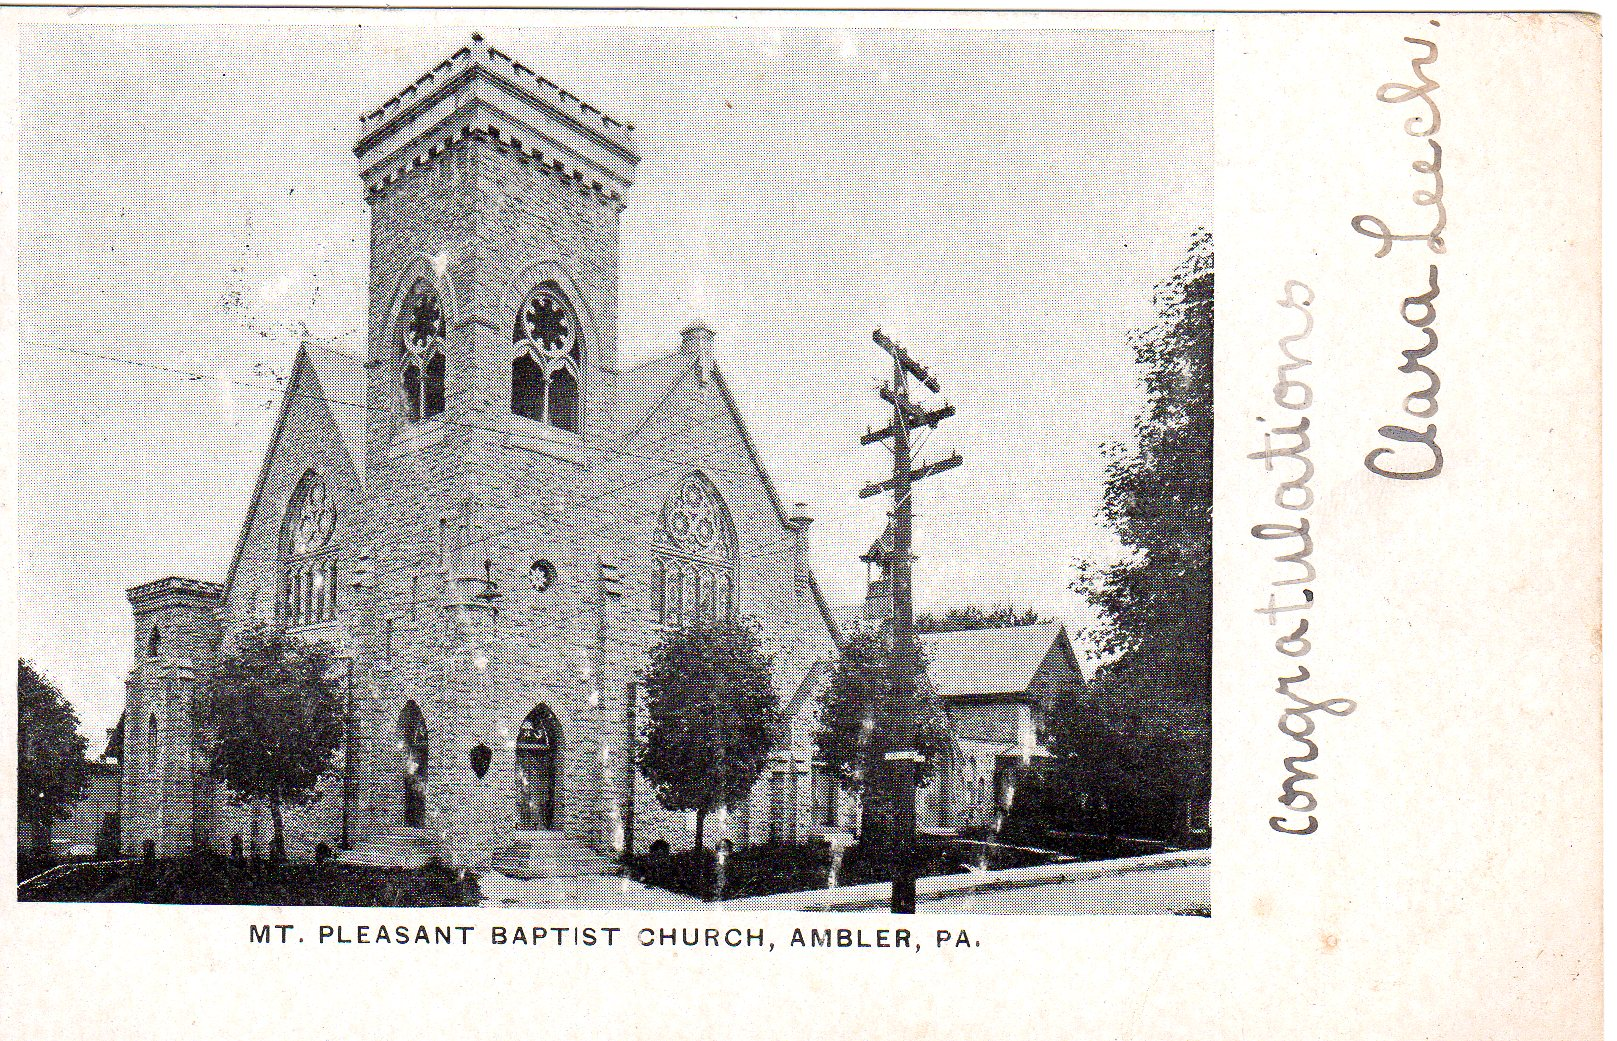 Post Card Collection (E Simon)_2682_27_Mt Pleasant Baptist Church, Ambler, Pa_30 Jan 1906